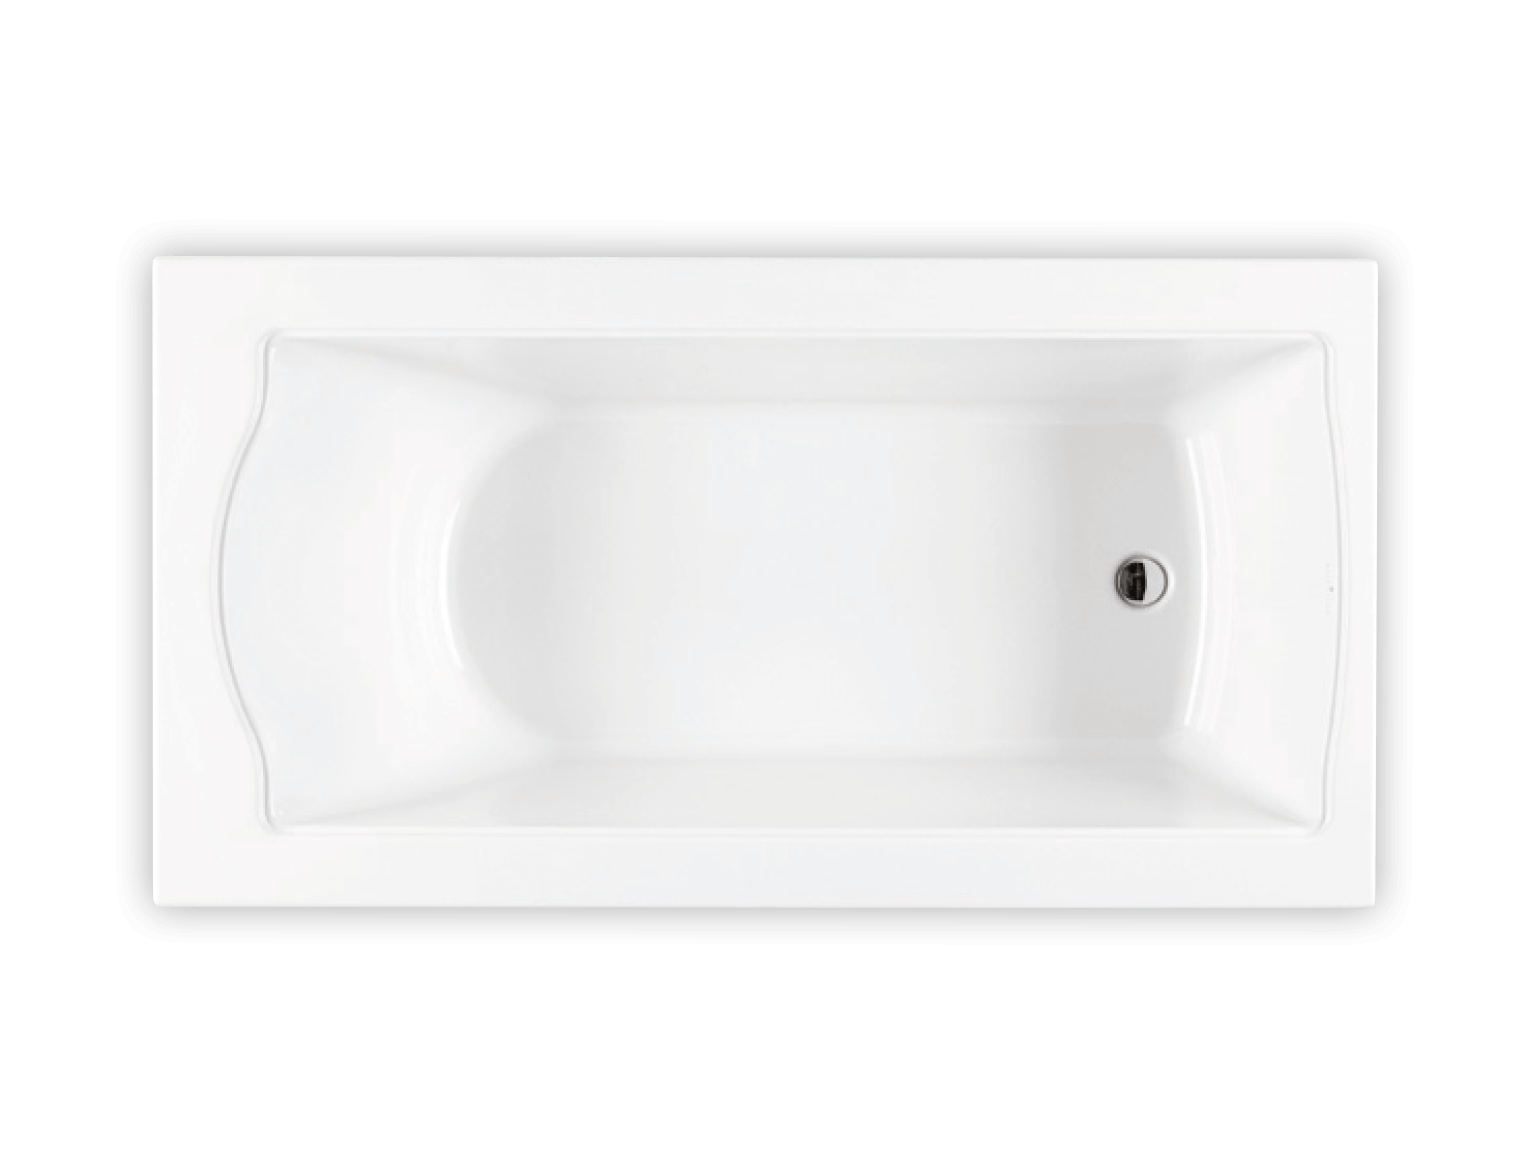 Bainultra Elegancia® collection freestanding alcove air jet bathtub for your modern bathroom